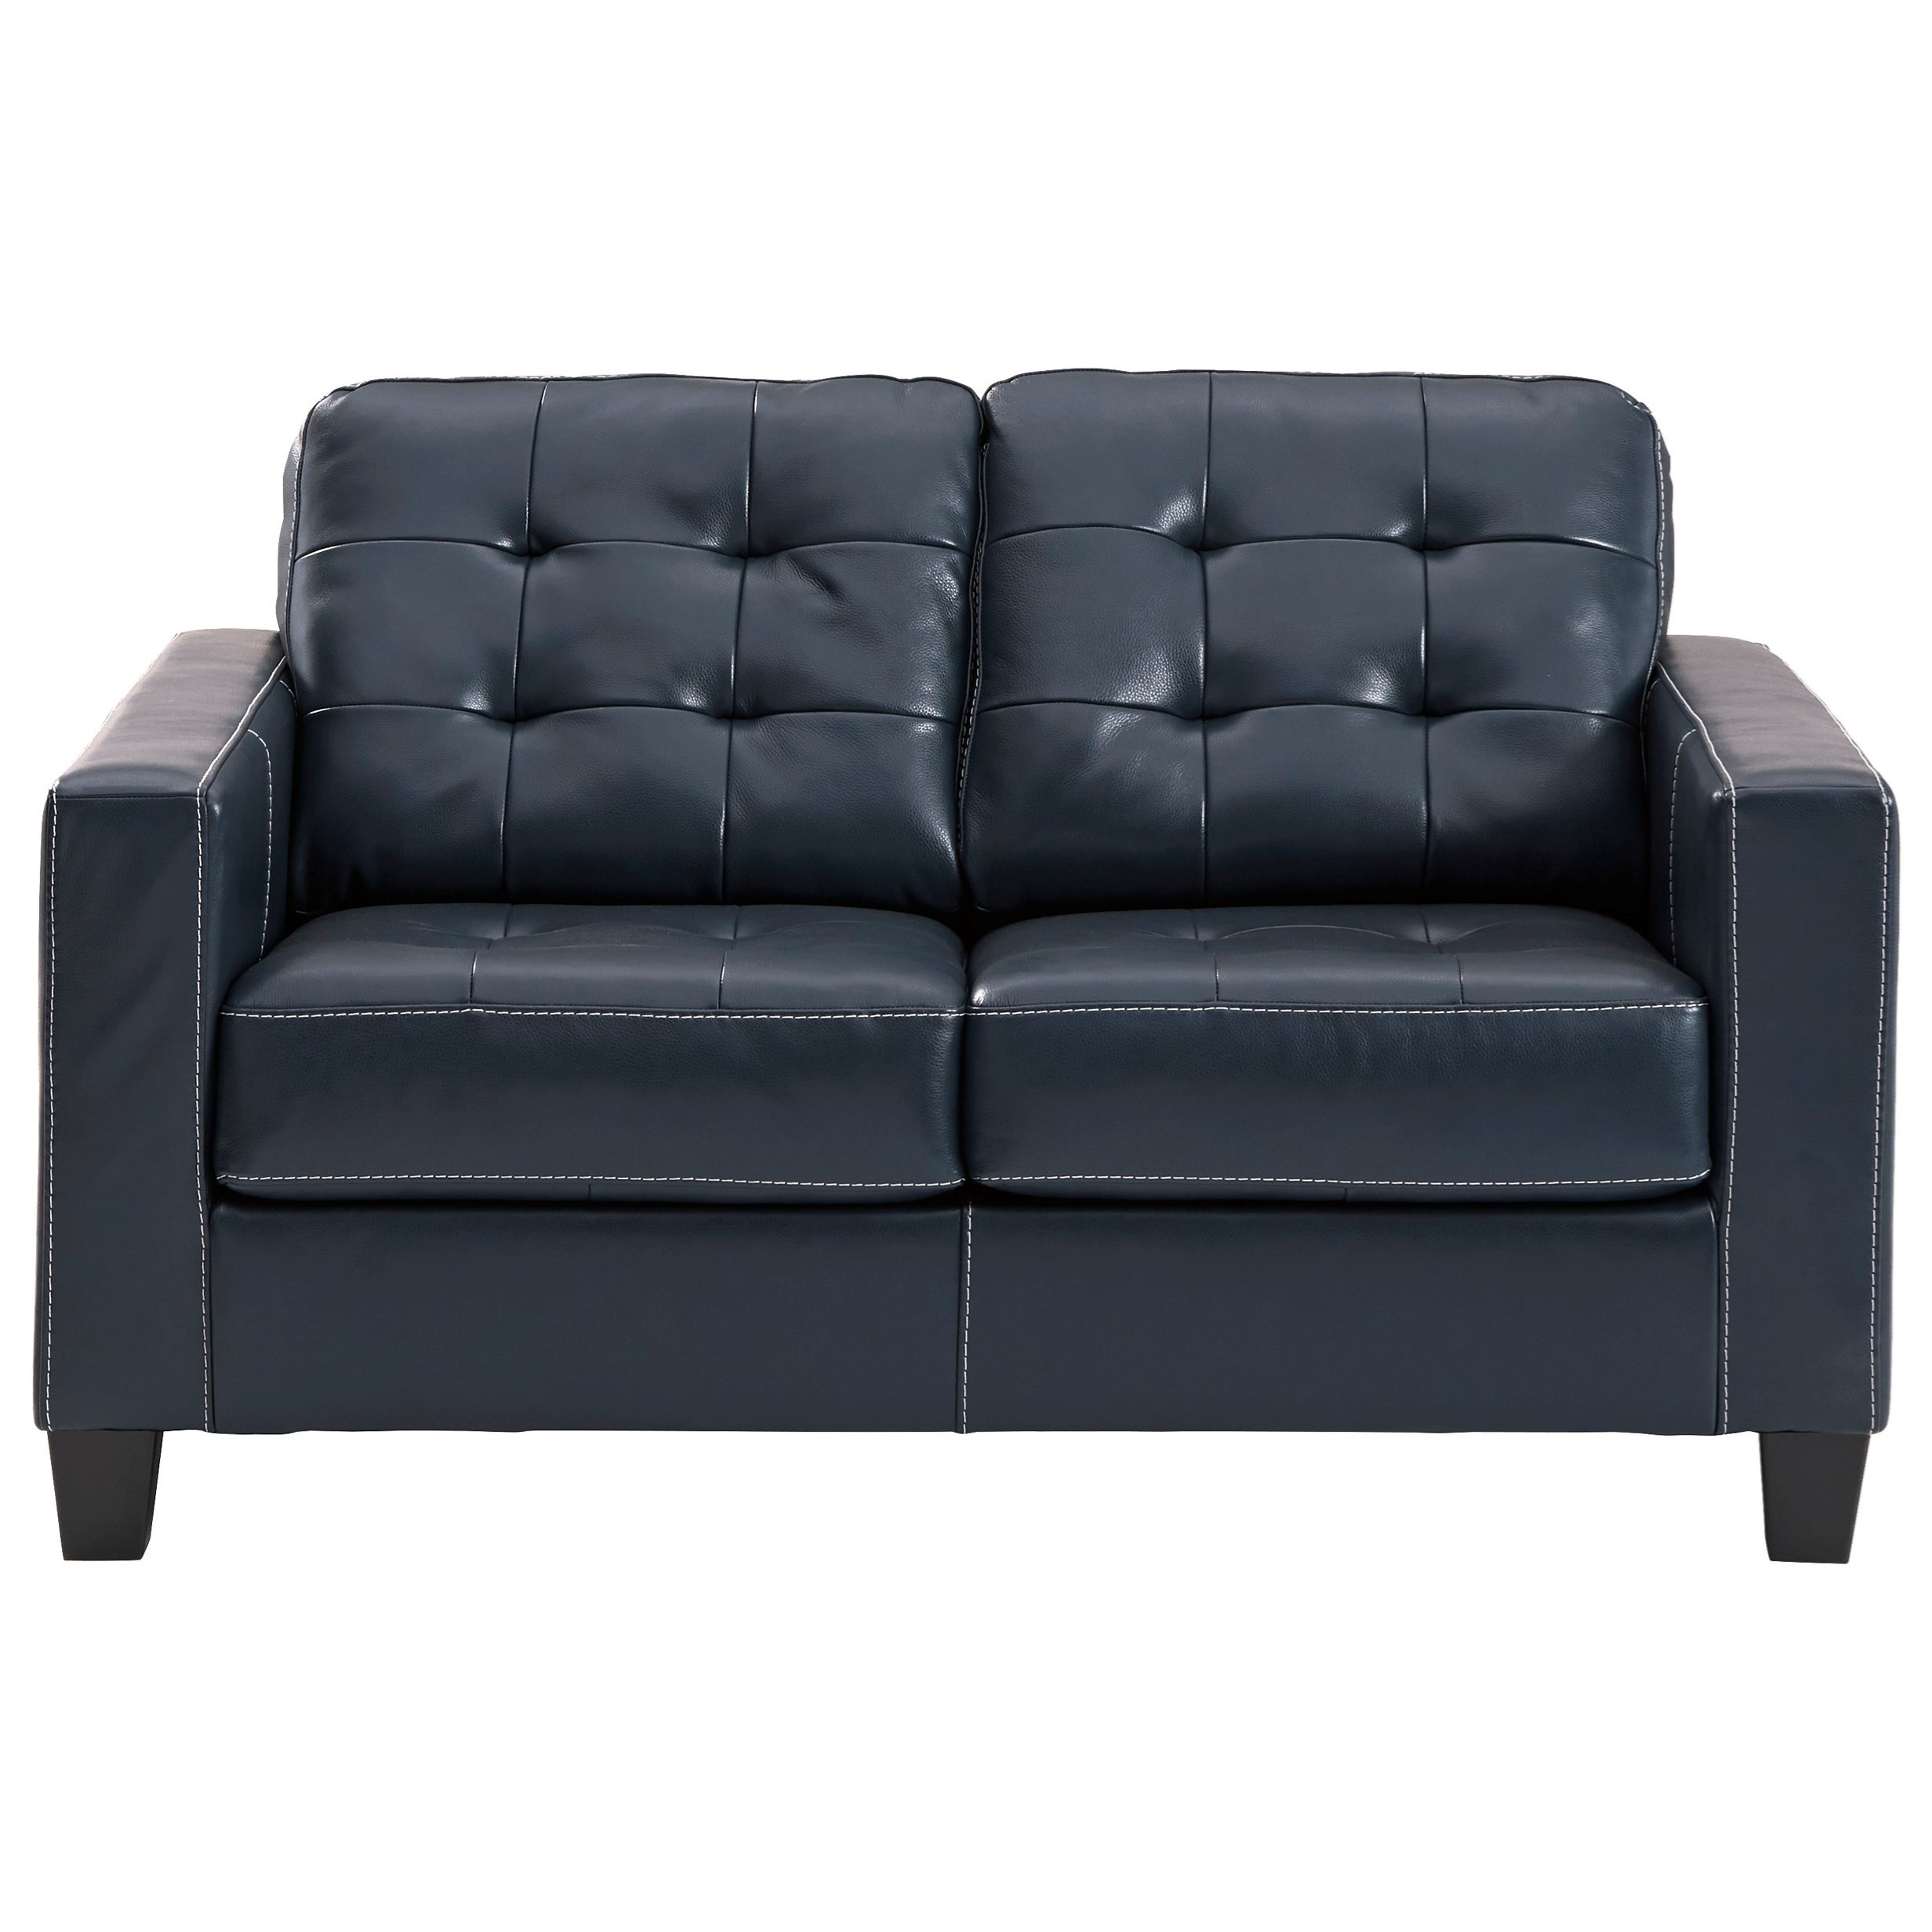 Altonbury Loveseat by Signature Design by Ashley at Northeast Factory Direct